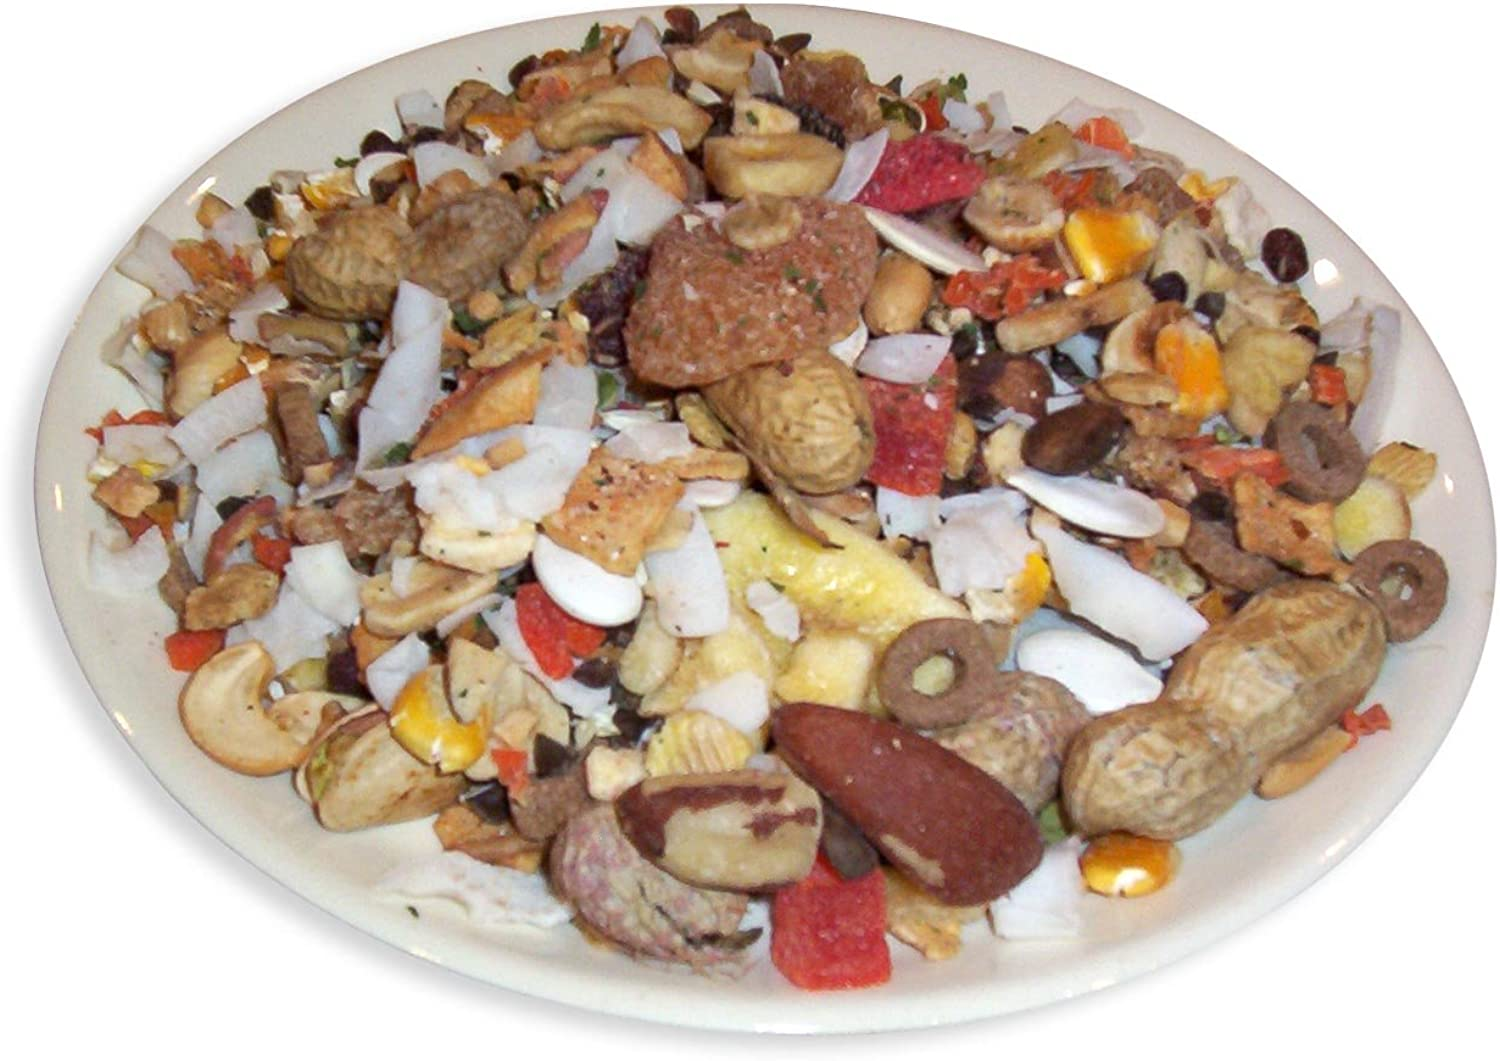 goldenfeast Fruits & Nuts Plus 64 Oz